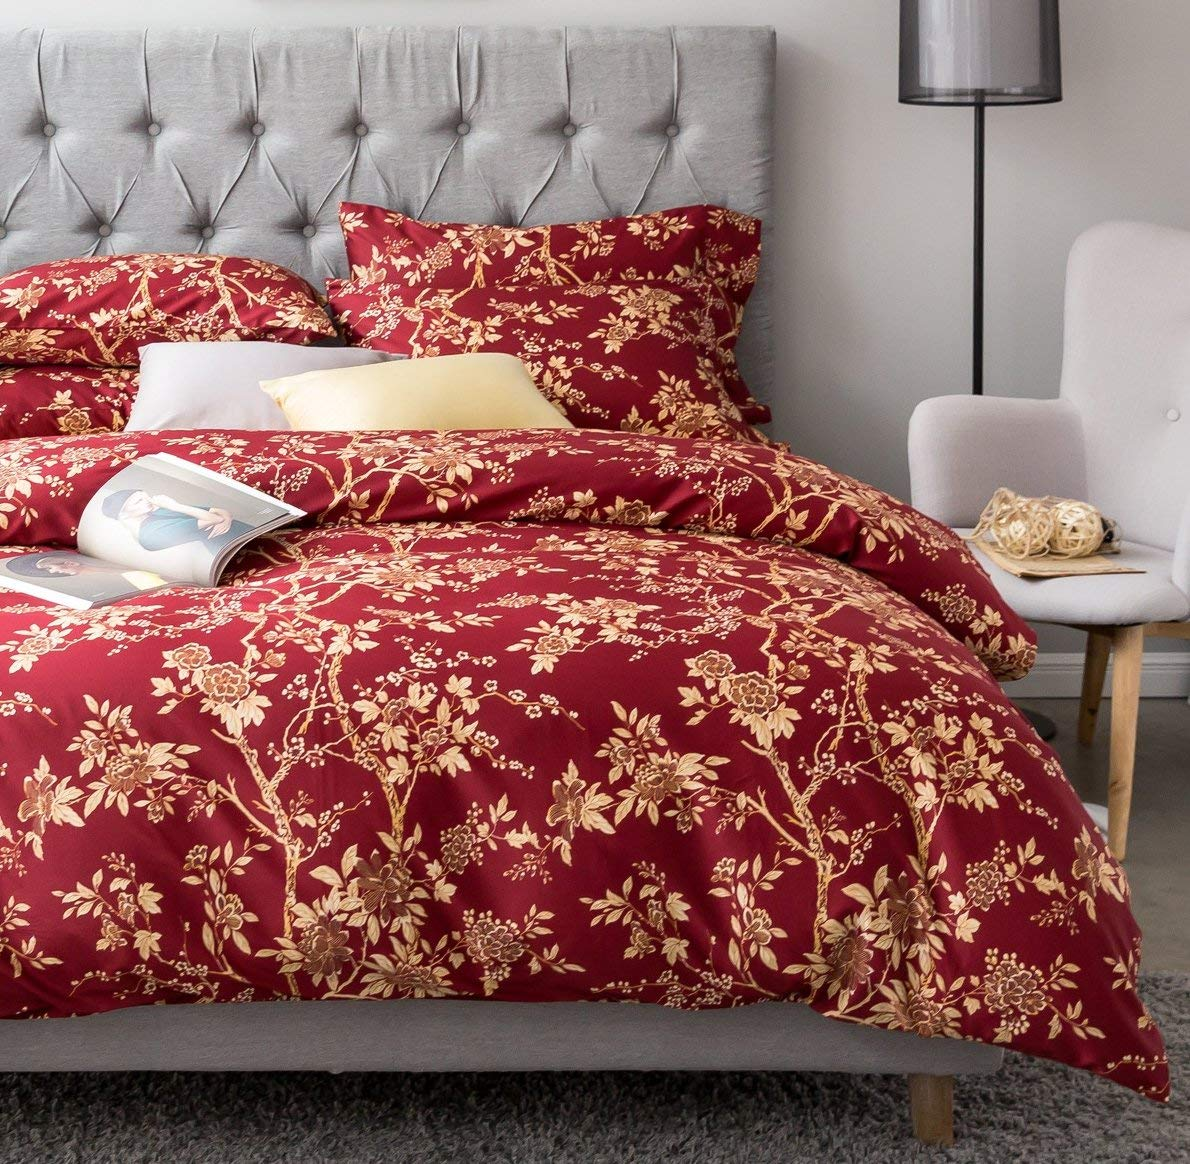 Eastern Floral Chinoiserie Blossom Print Duvet Cover Garnet Tan Gold White Asian Style Botanical Tree Branches Ornamental Drawing 400tc Egyptian Cotton 3pc Bedding Set Eikei